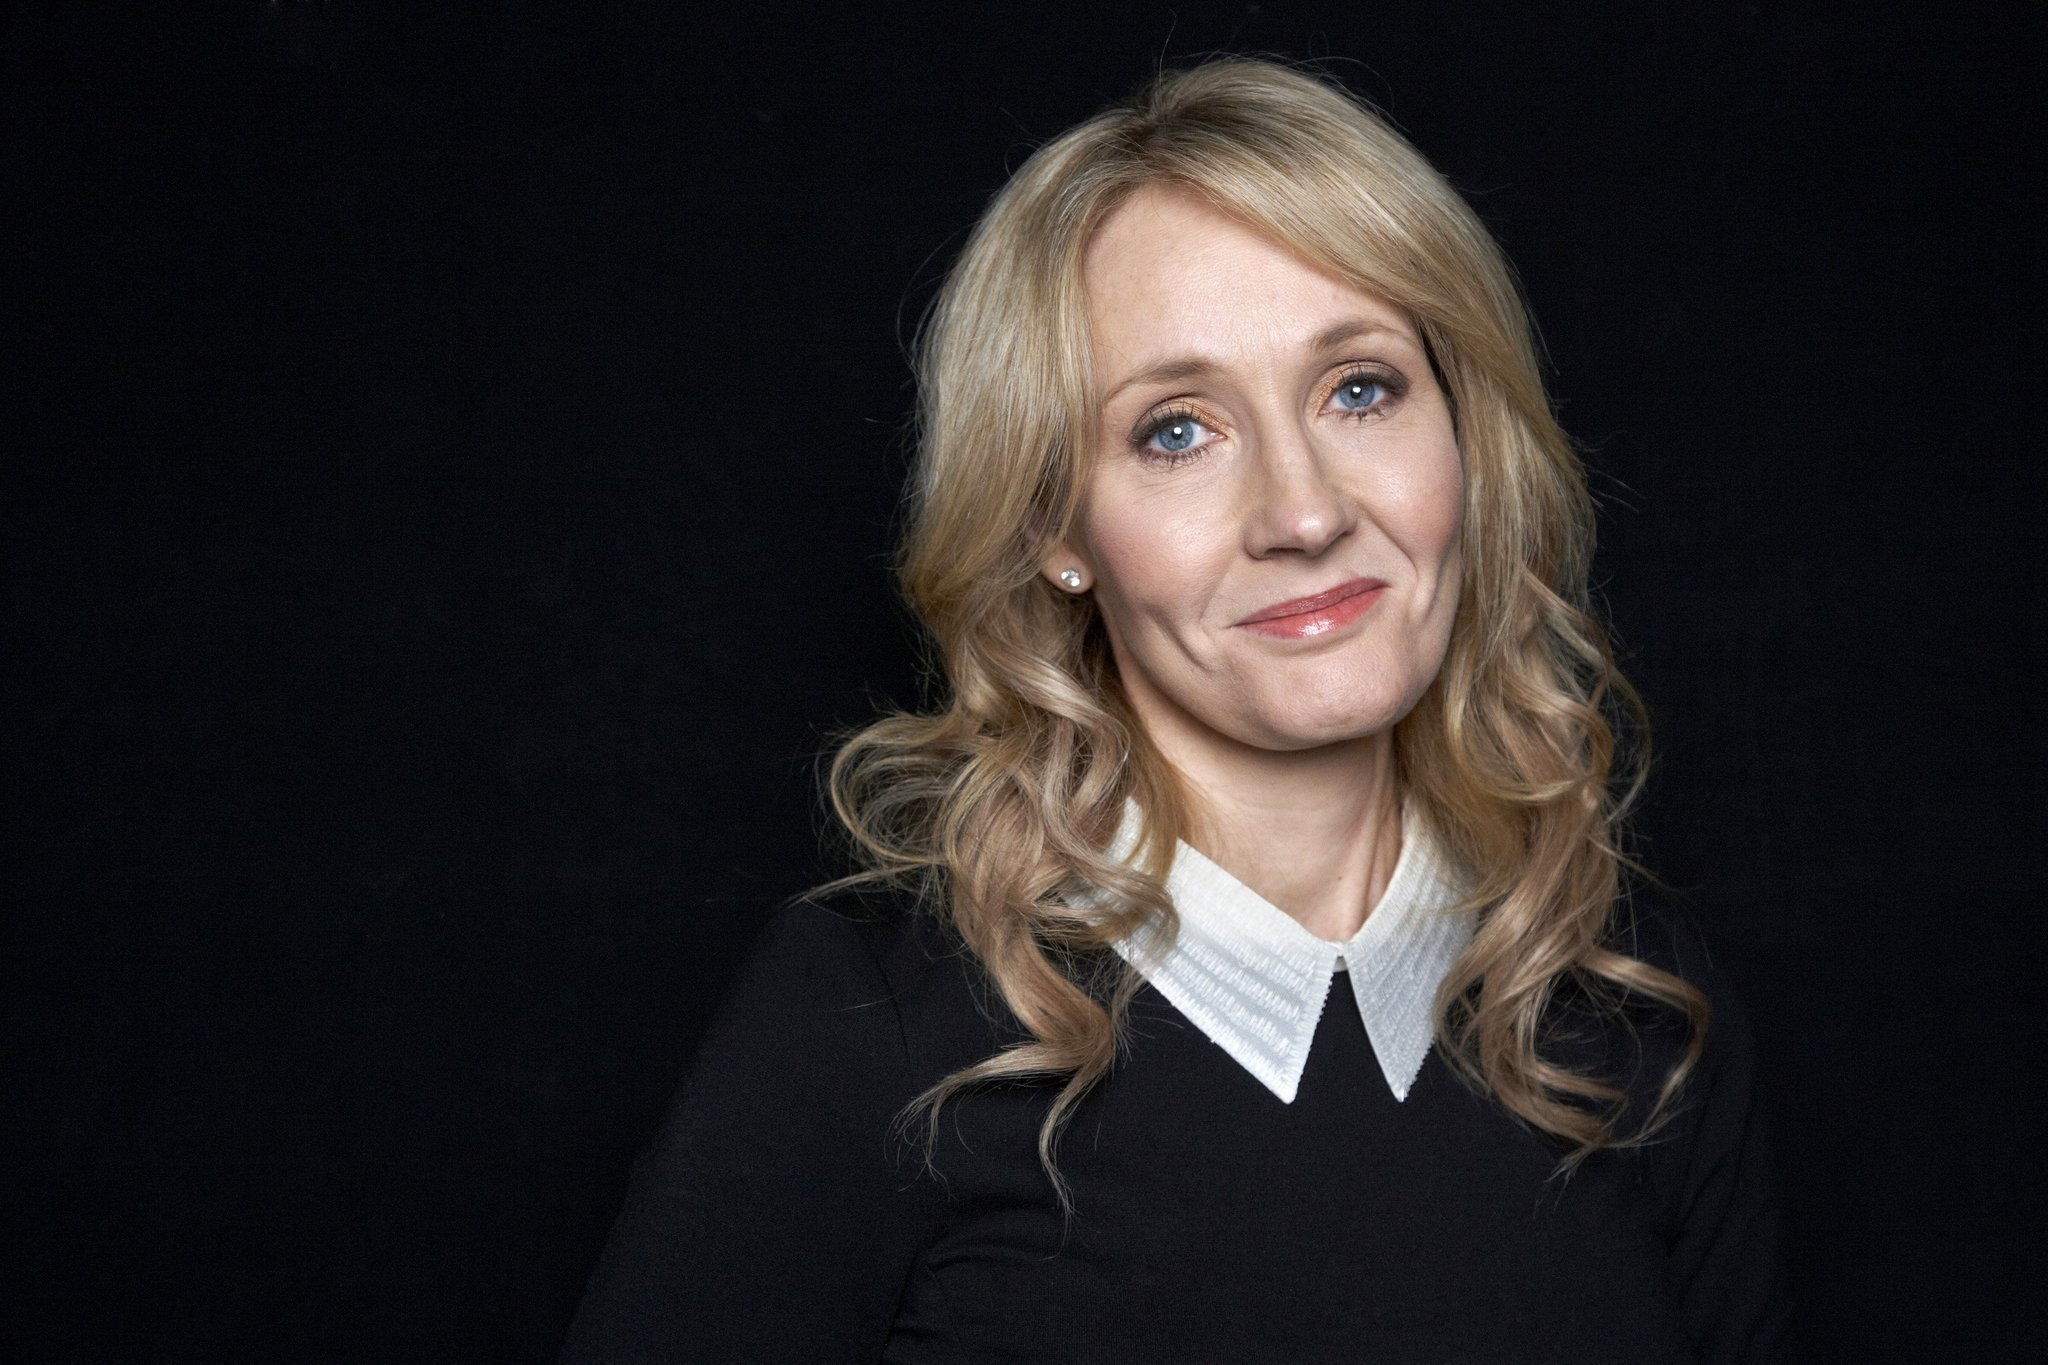 j k rowling reveals her favorite harry potter chapter and j k rowling reveals her favorite harry potter chapter and it s a weeper la times